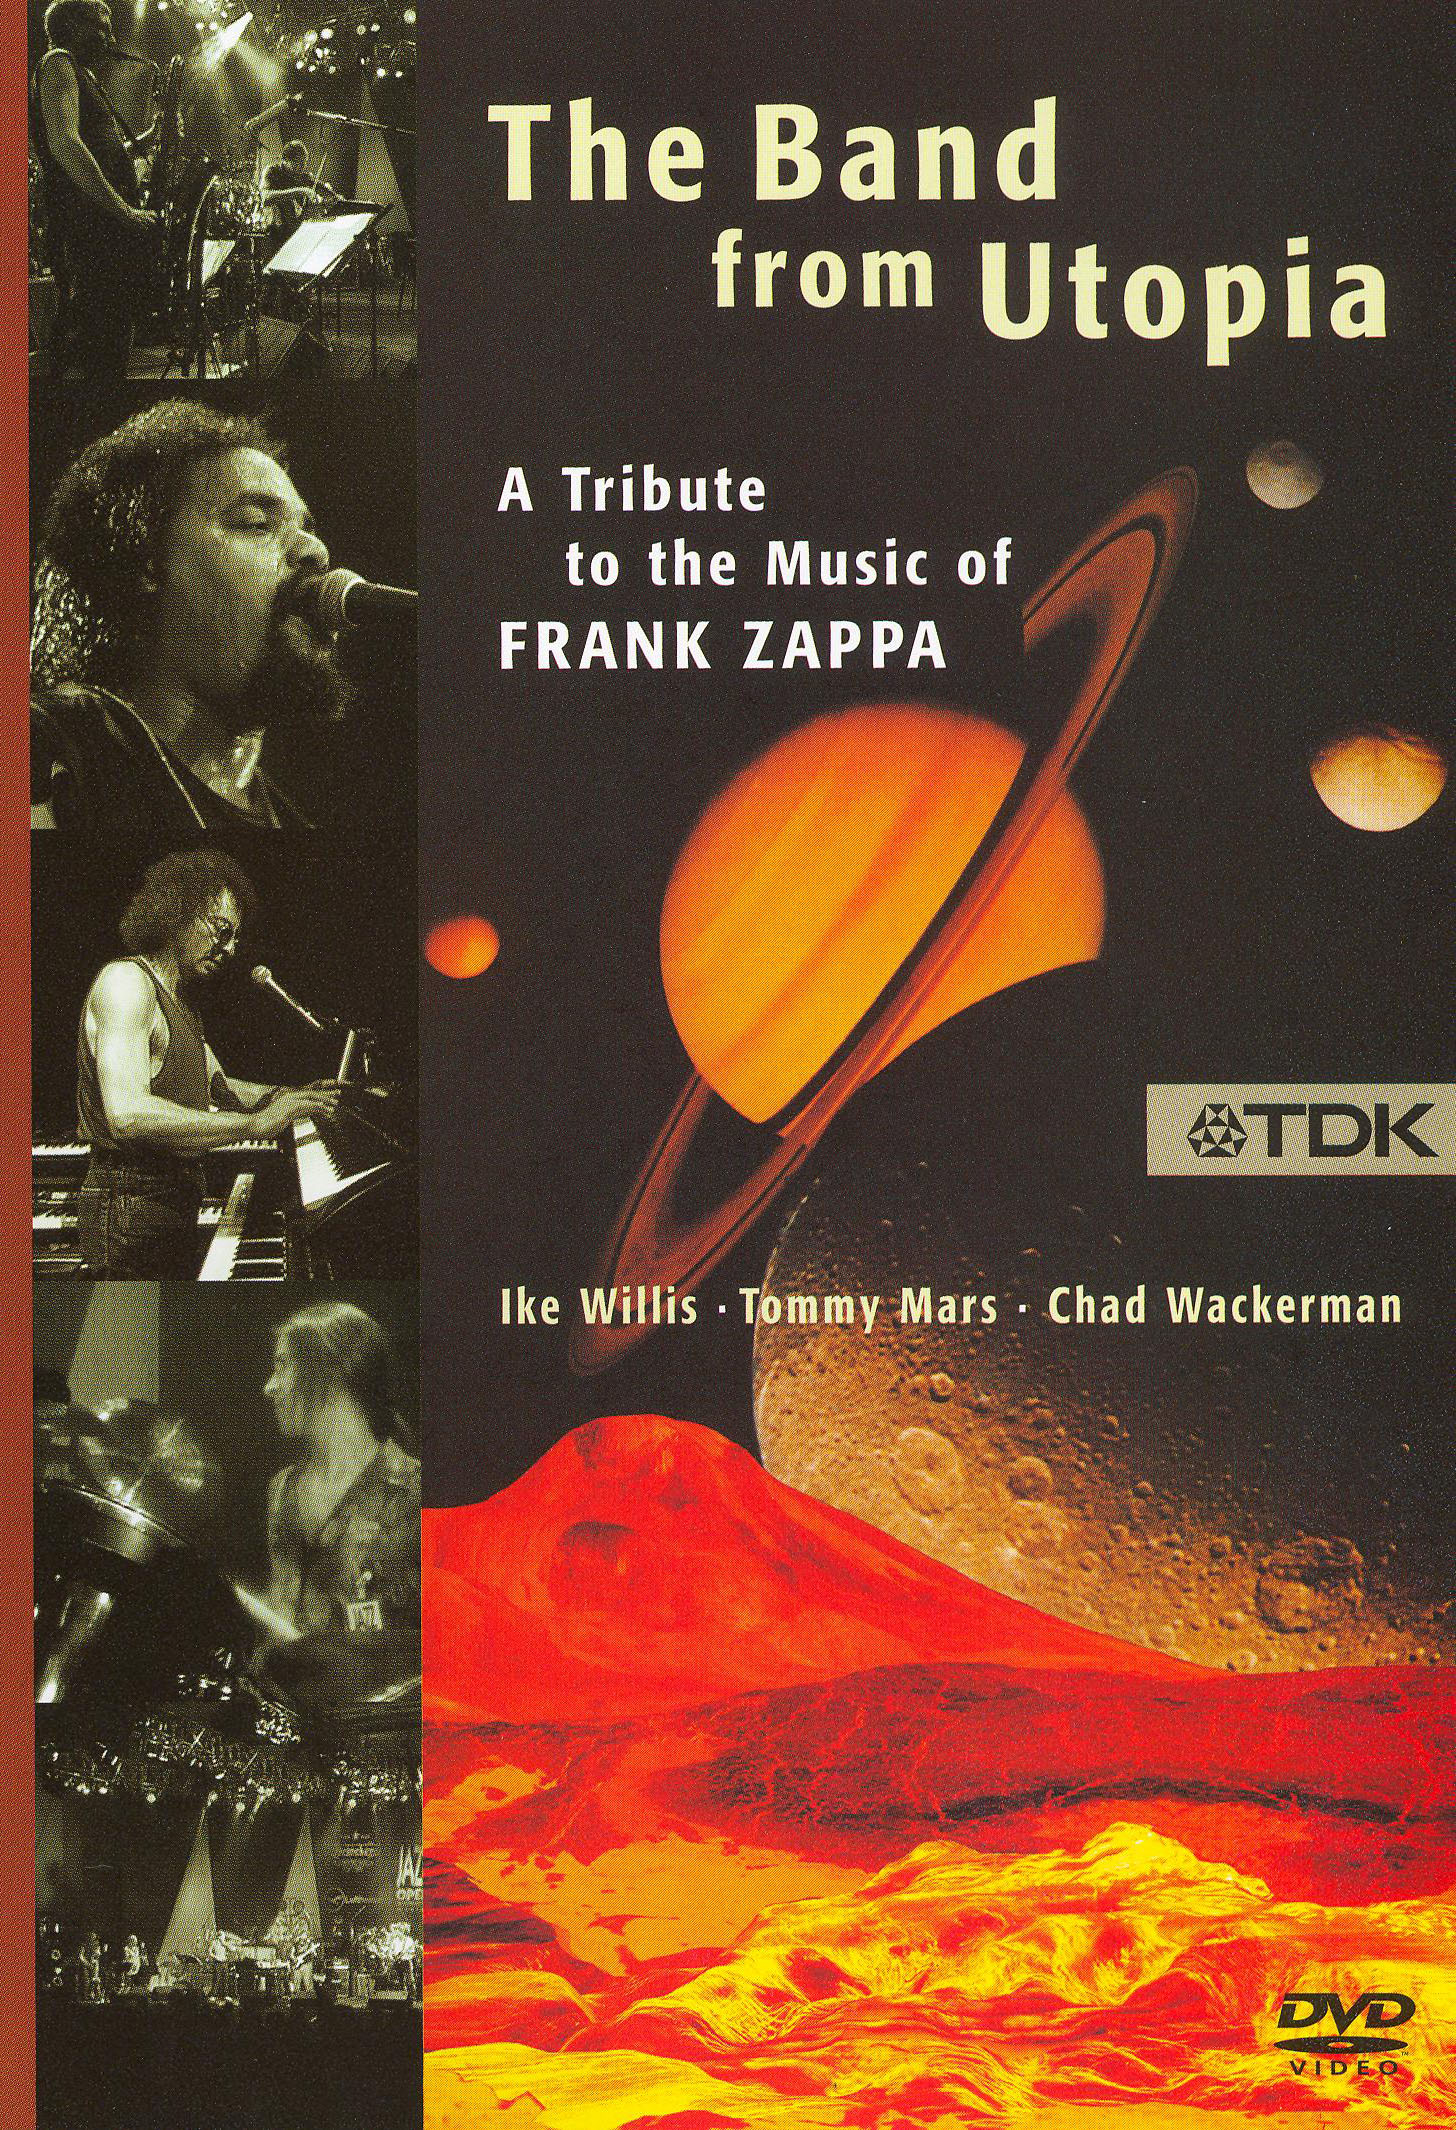 The Band from Utopia: A Tribute to the Music of Frank Zappa